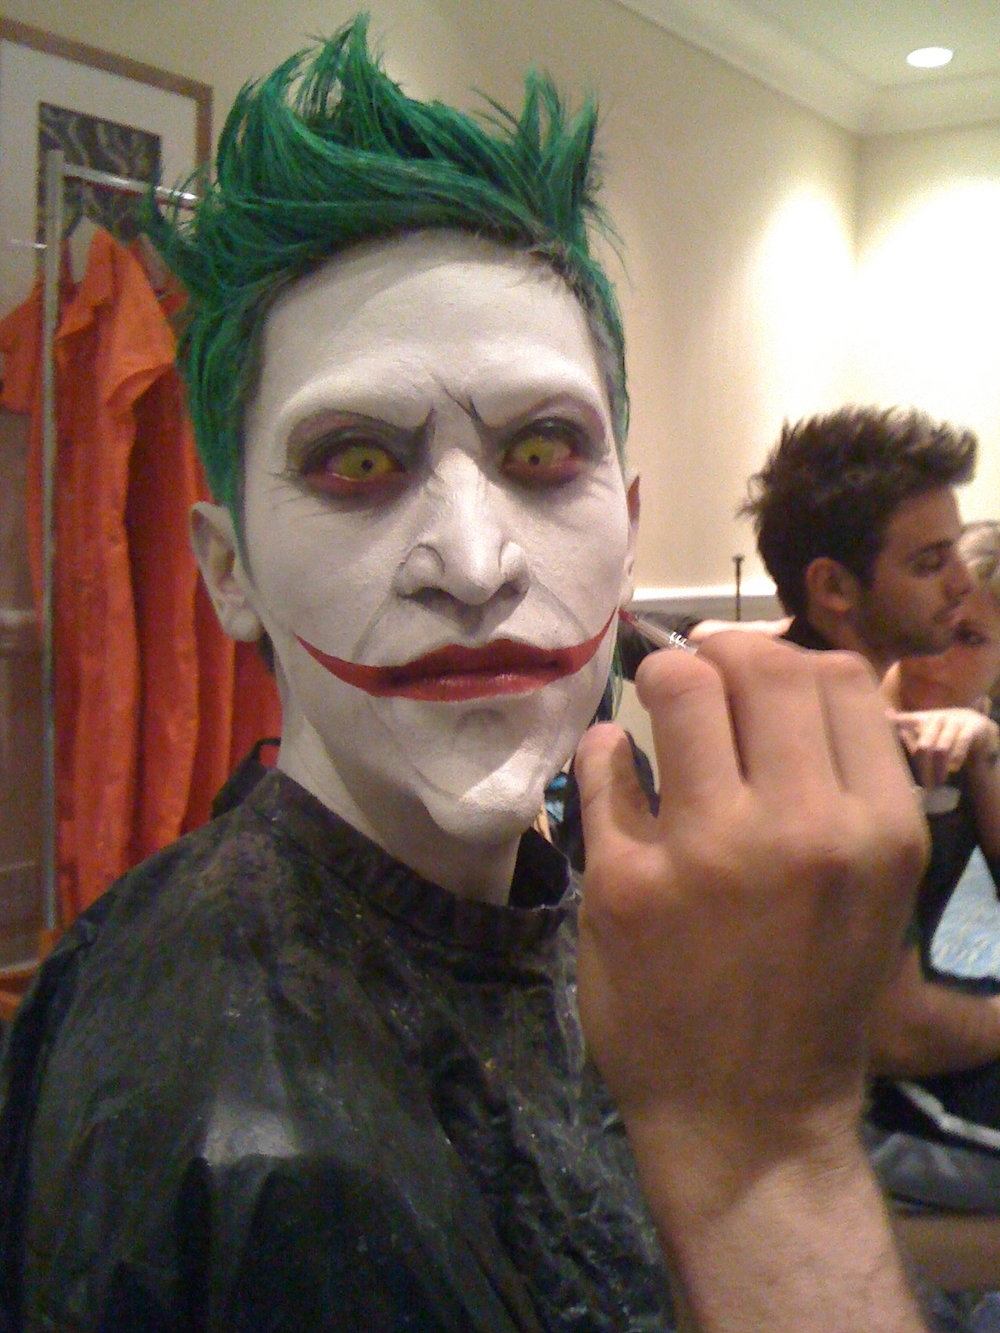 Jason Yang Batman Joker